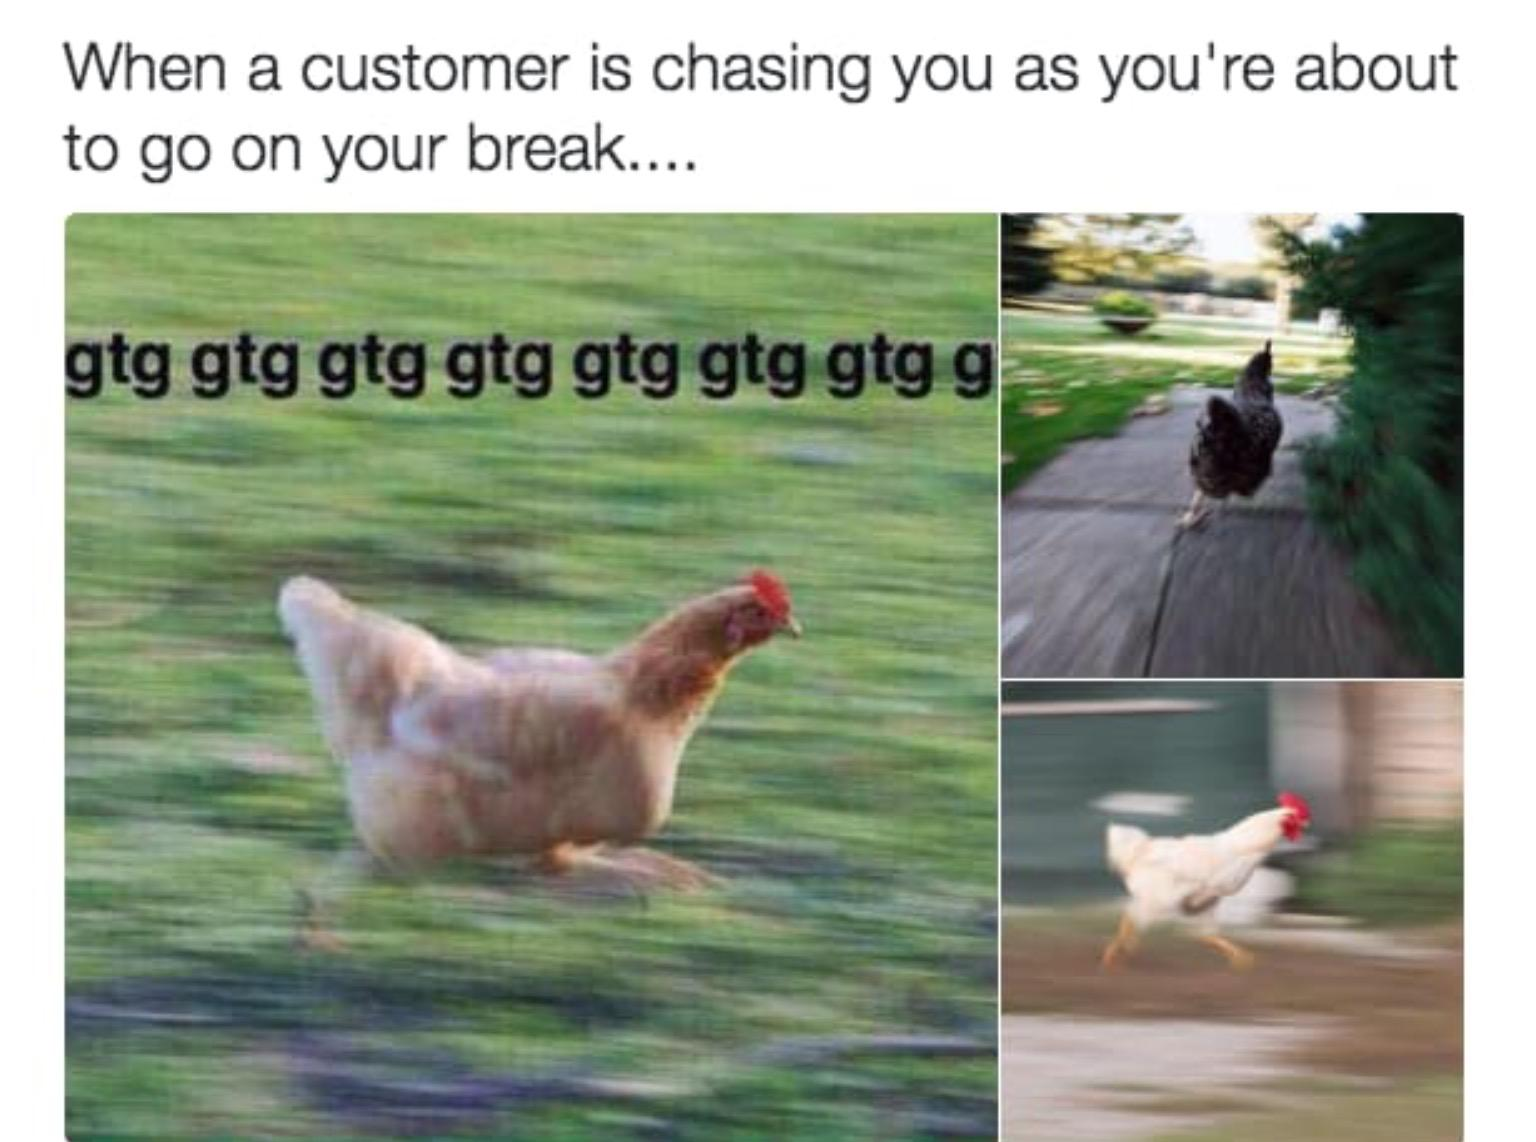 17-relatable-memes-for-students-working-in-retail-7